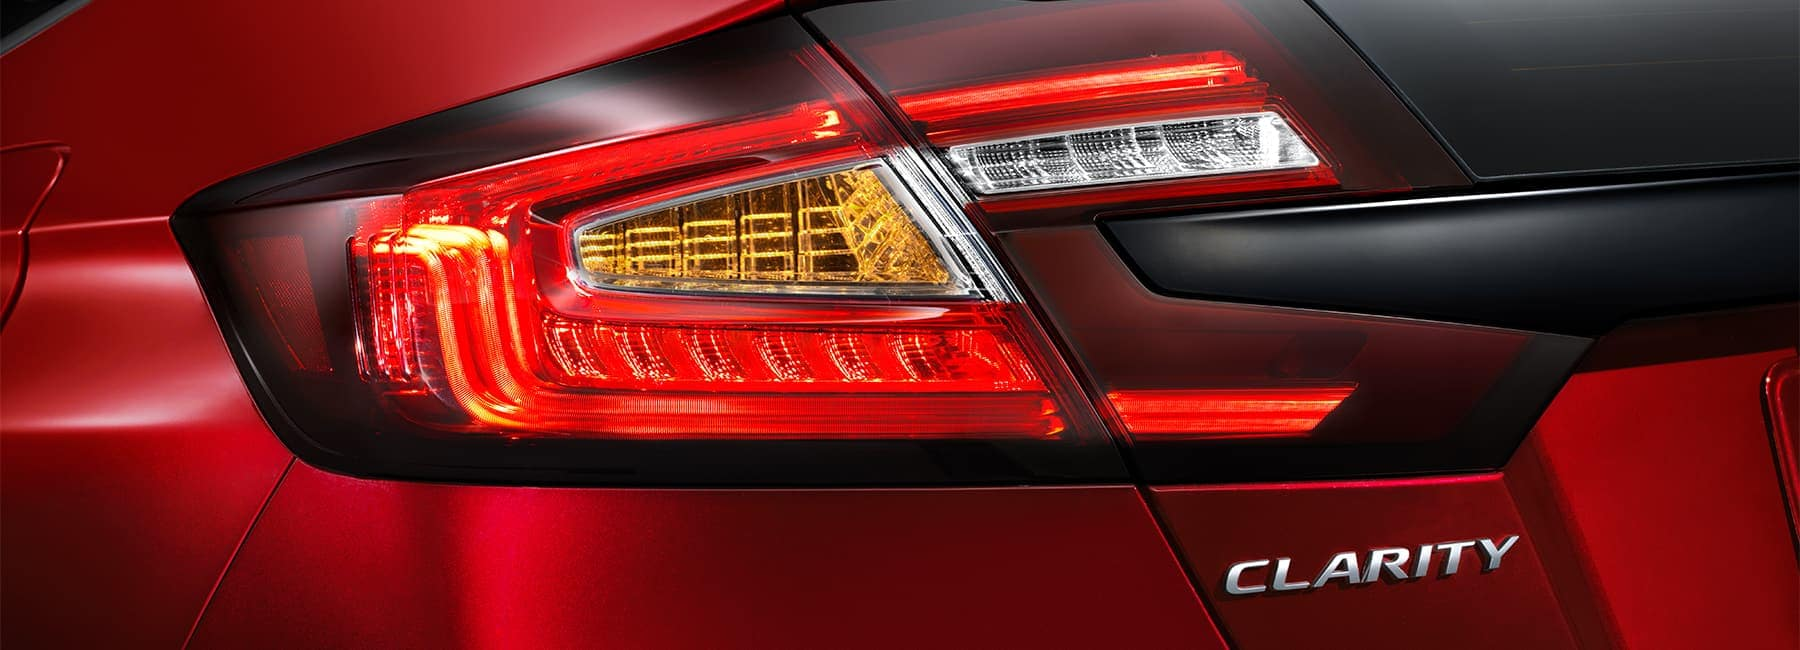 2020-Honda-Clarity-rear-view-banner